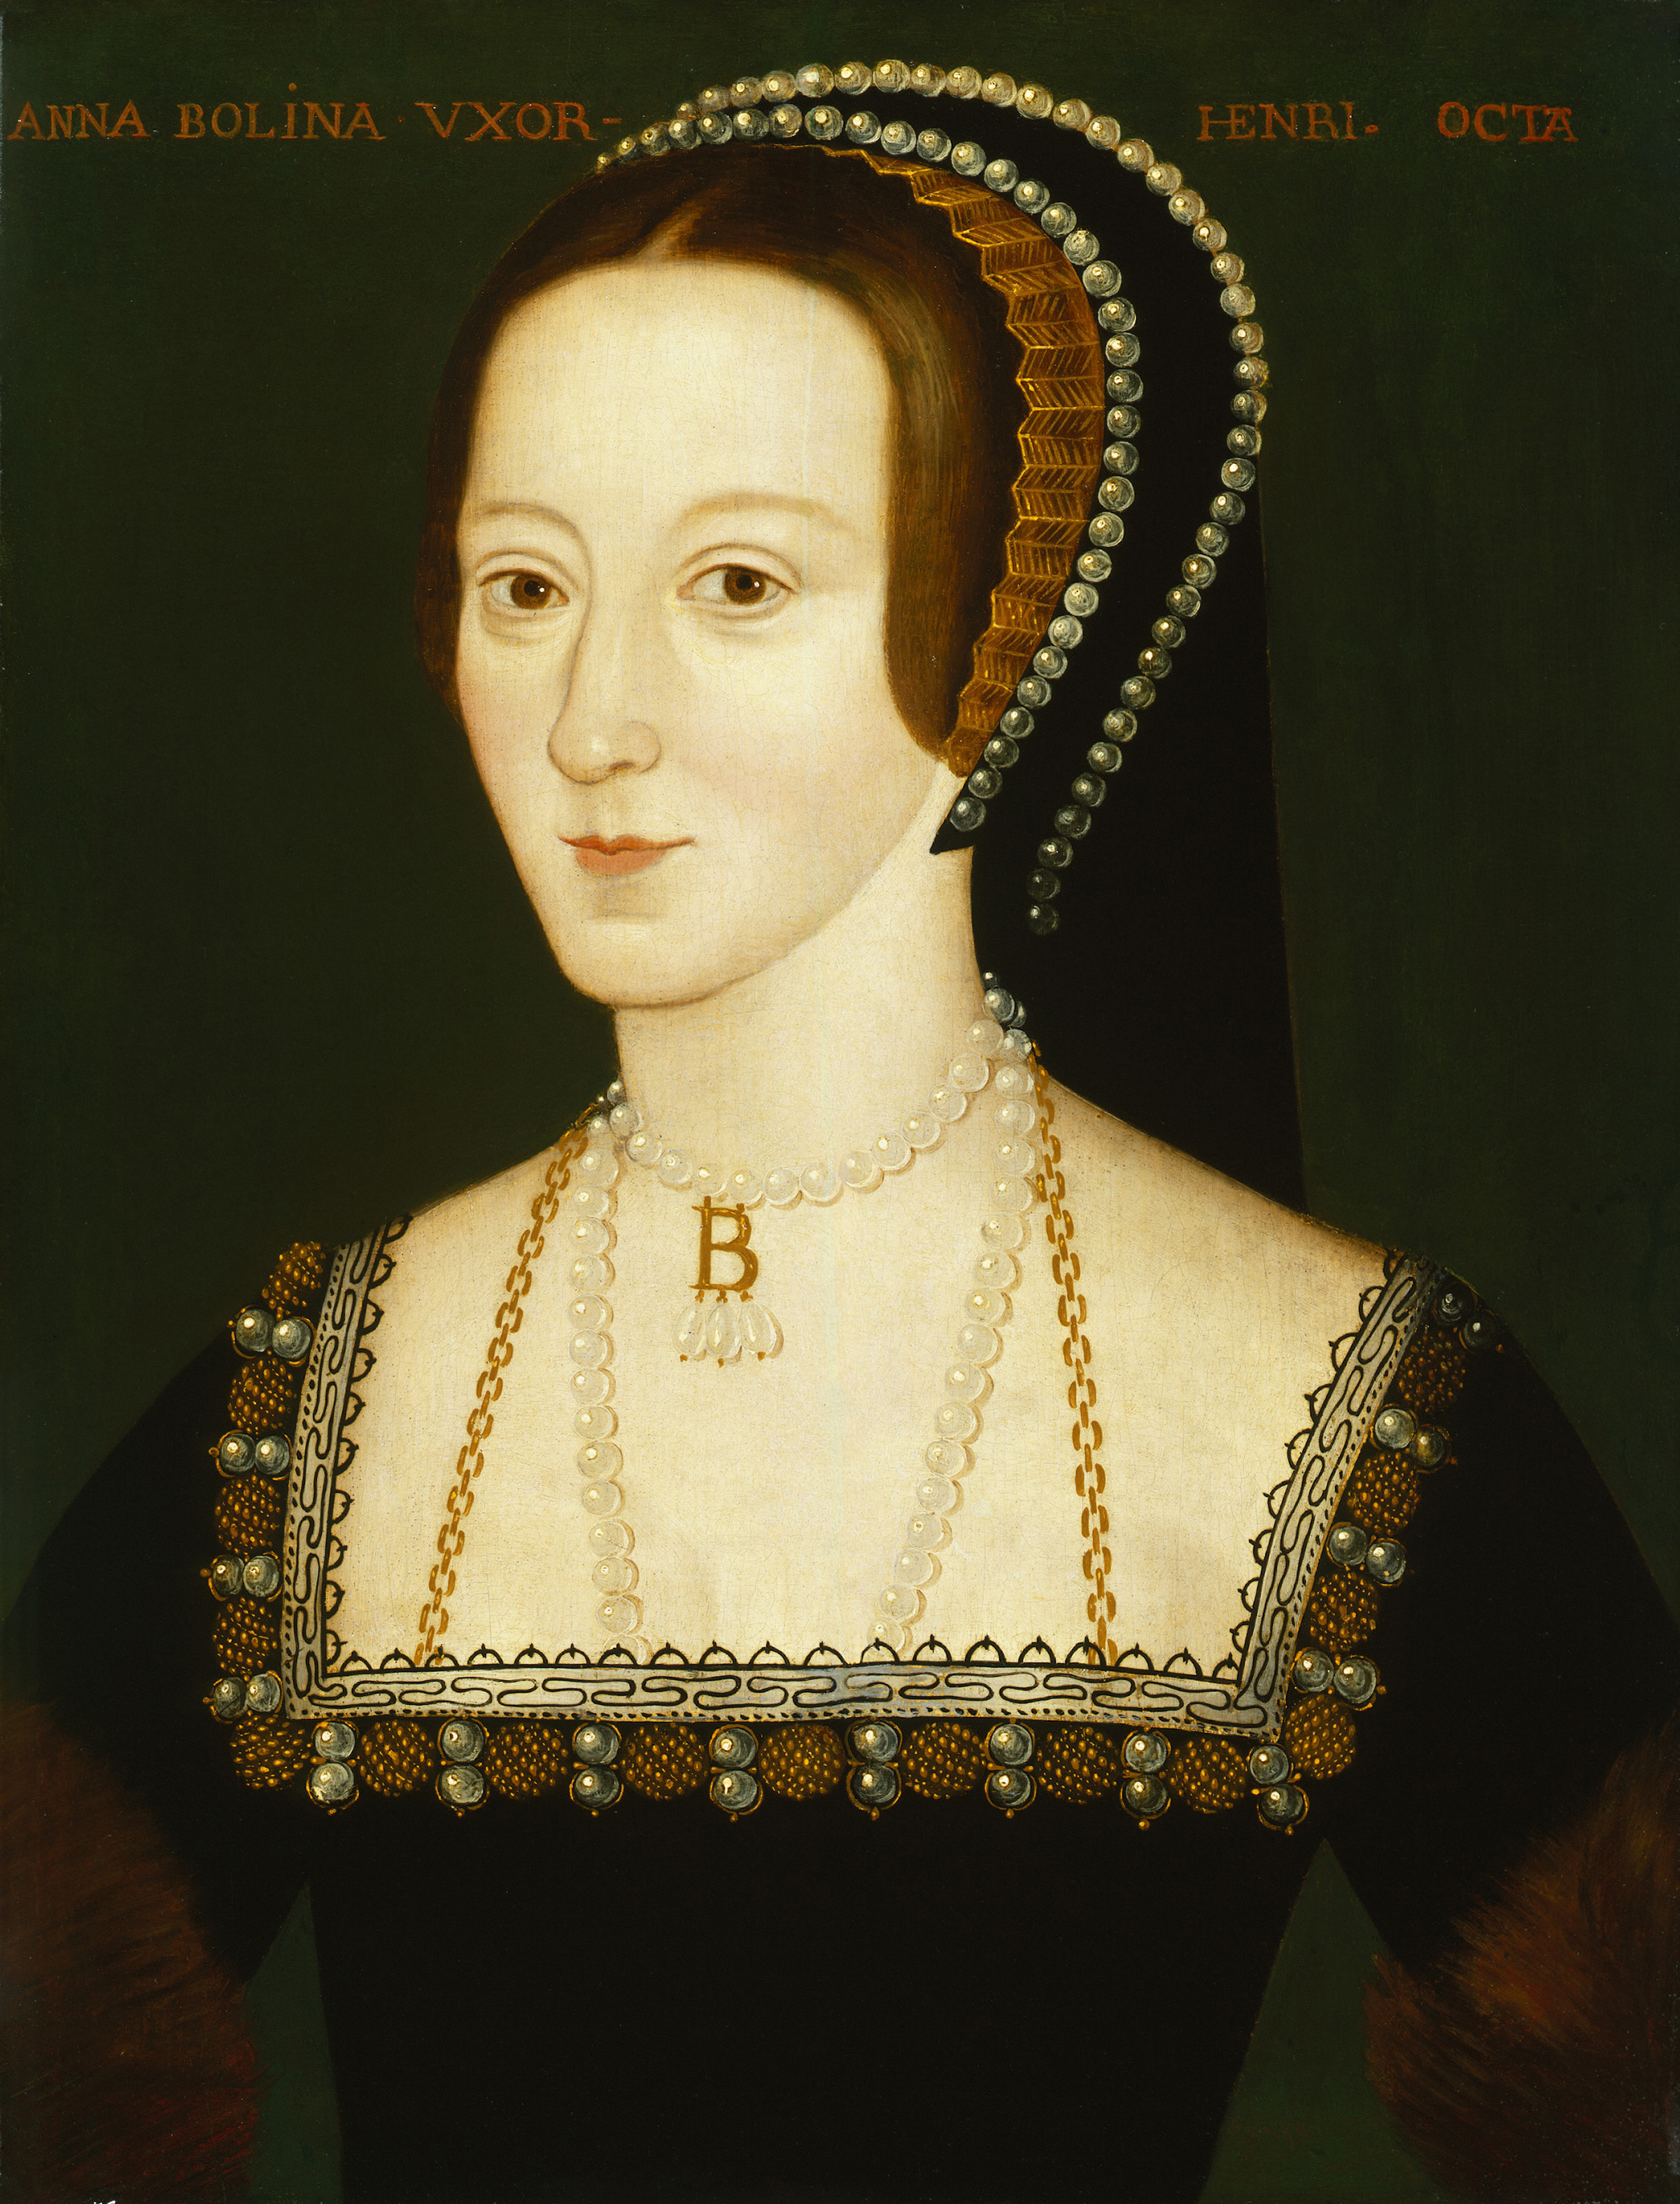 Queen of England and the second wife of King Henry VIII; Image source